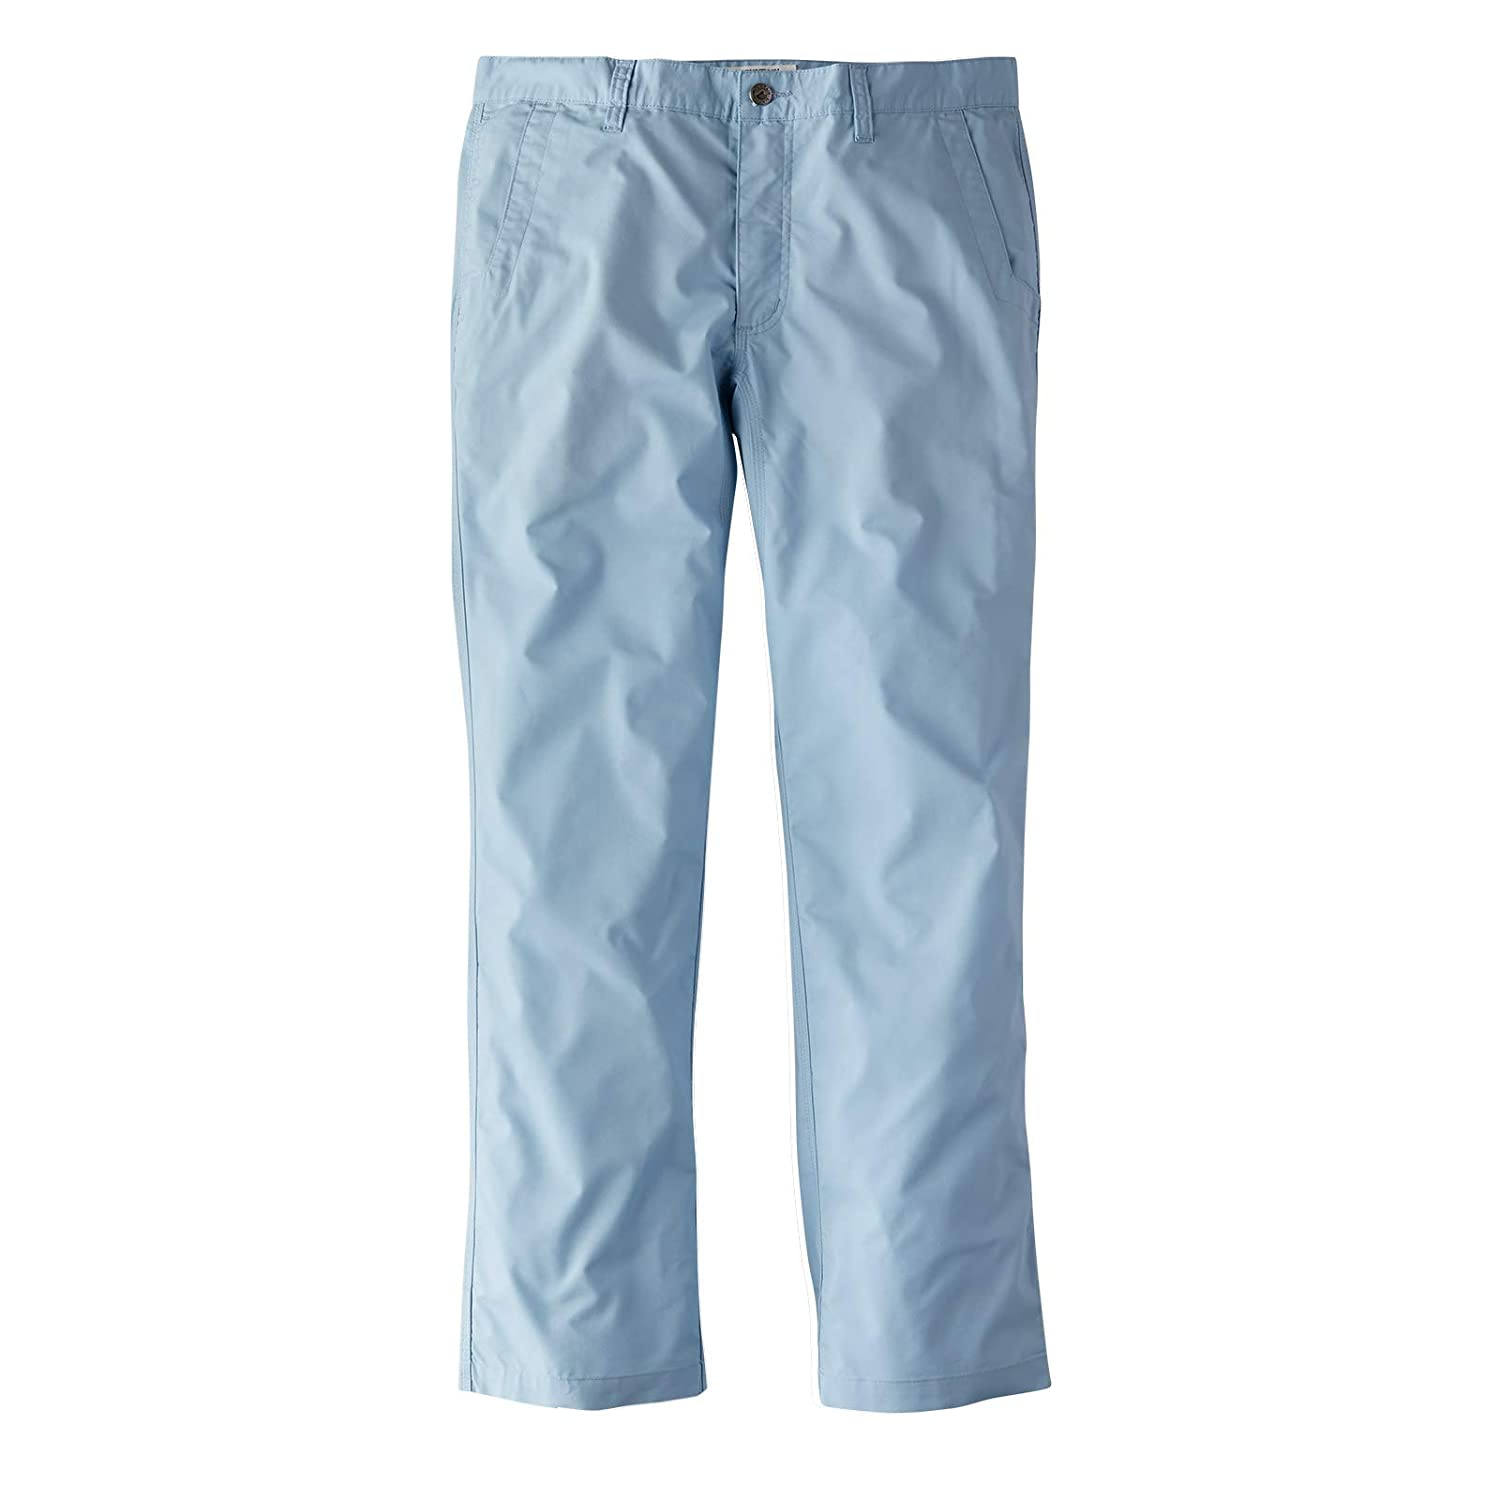 Mountain Khakis Men's Stretch Poplin Pants Relaxed Fit